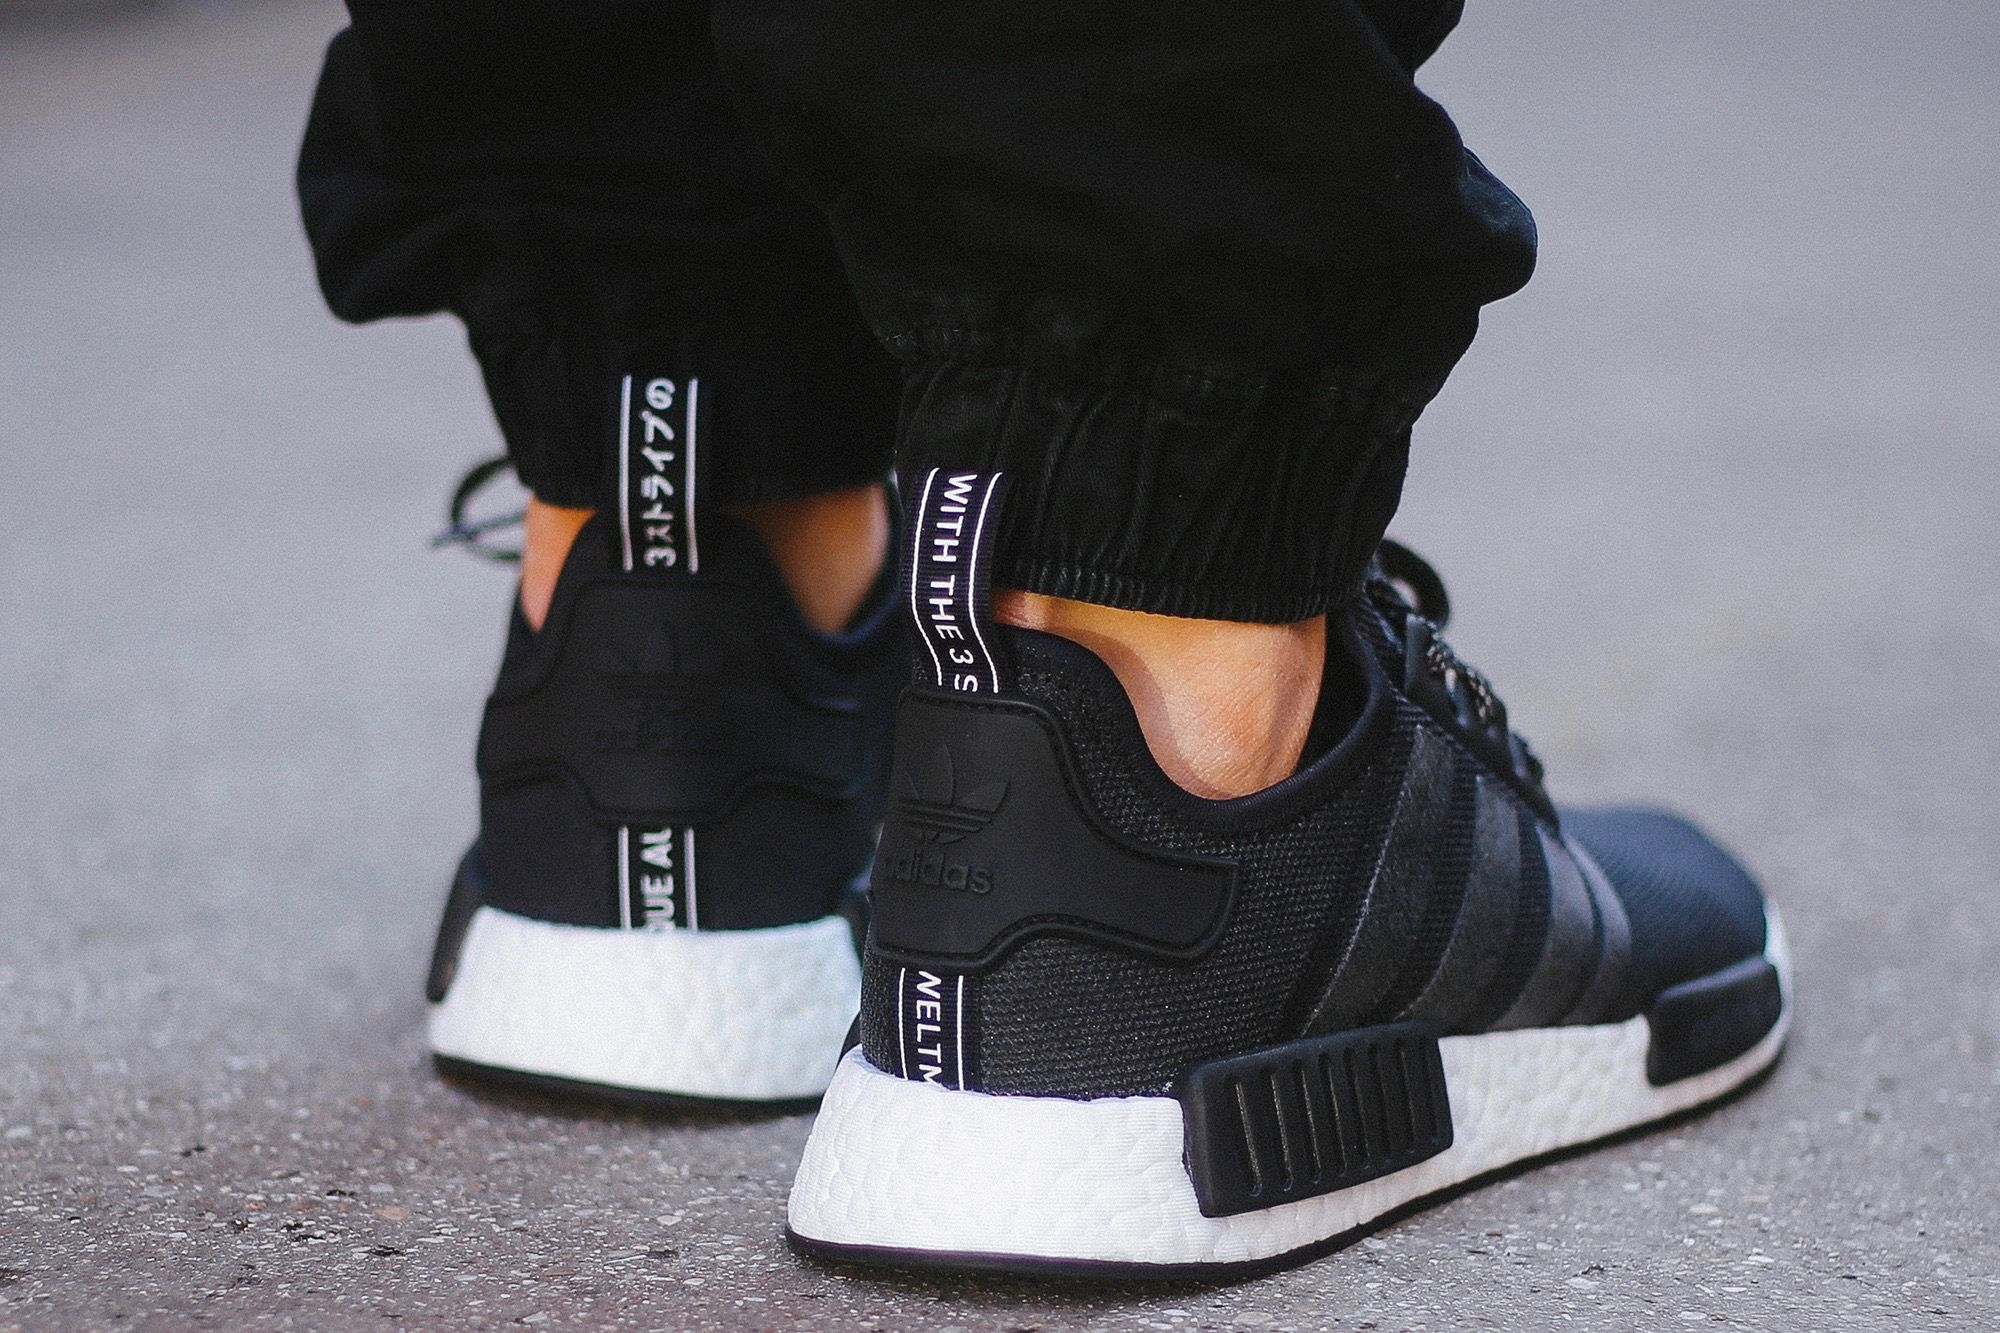 182c94176 adidas NMD R1 XR1 On-foot Preview via BSTN Store - EU Kicks  Sneaker  Magazine